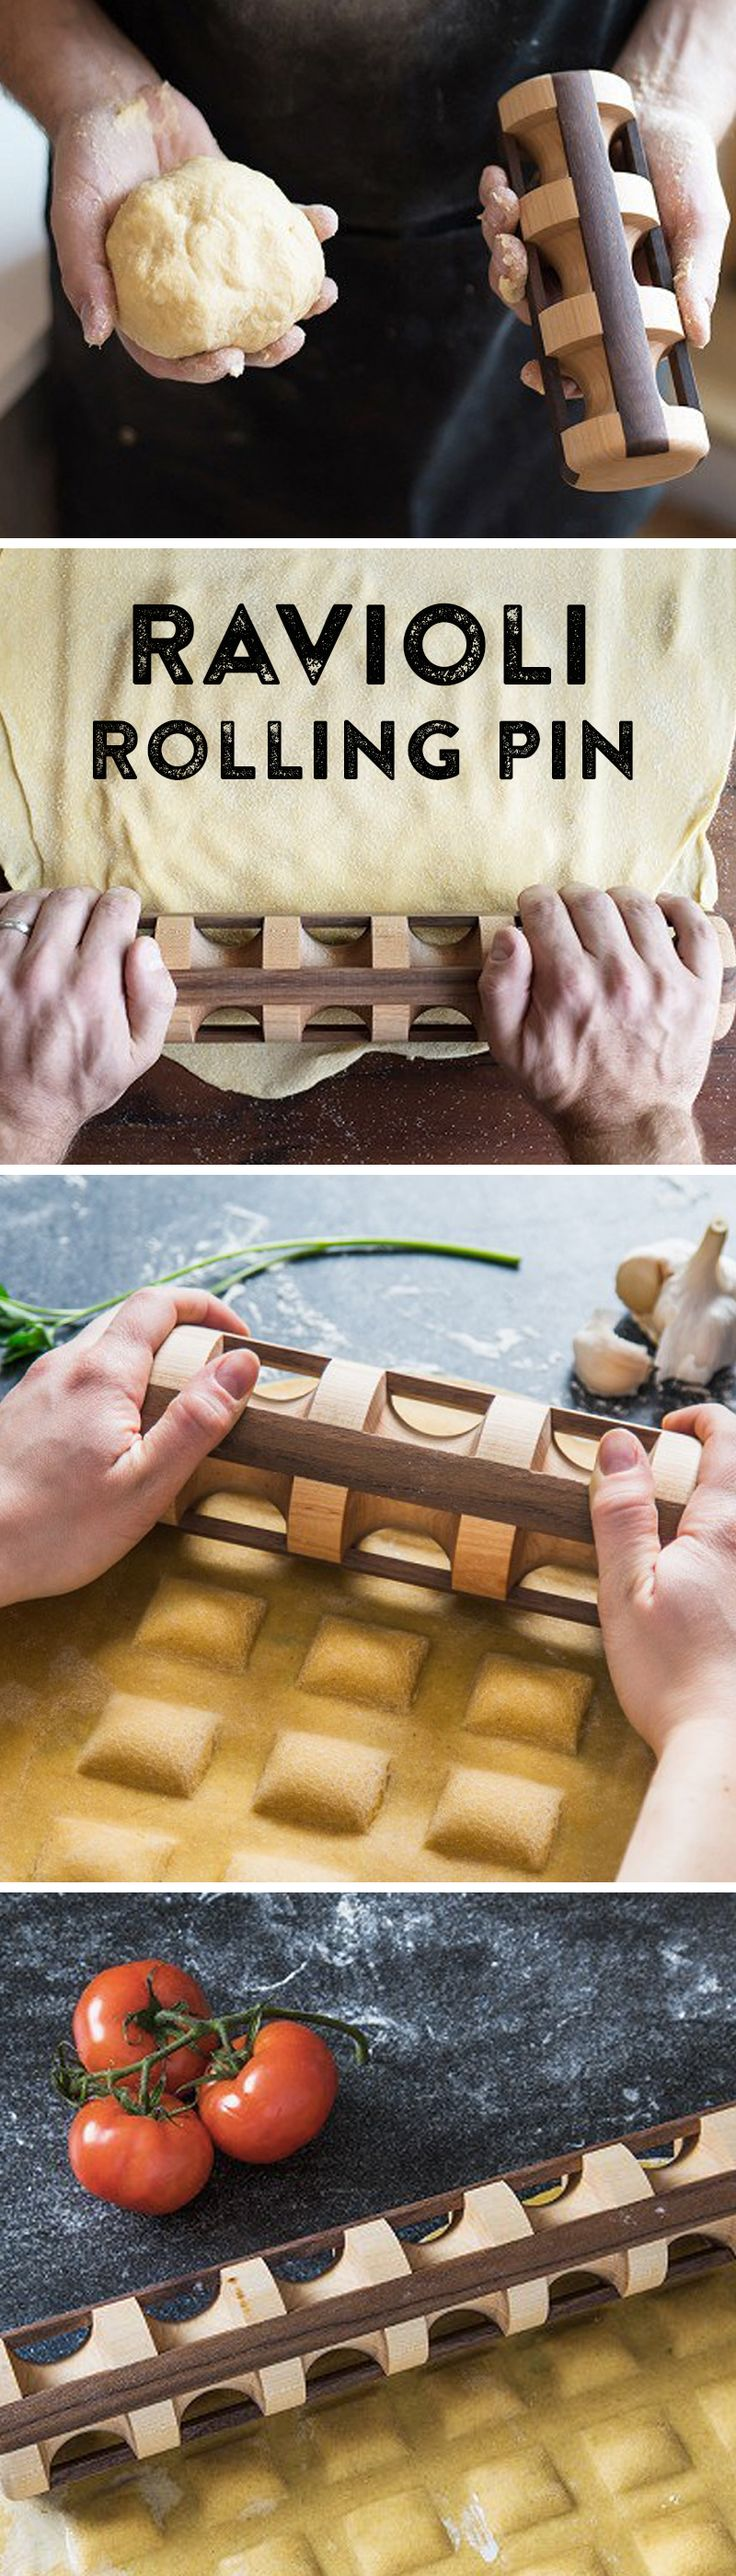 As beautiful as it is functional, this ravioli rolling pin is handmade in the U.S. from sustainable hardwood. Simply layer your own filling between two pasta sheets, then get rolling. Press firmly and voila—perfect, handmade ravioli you can sign your name to.